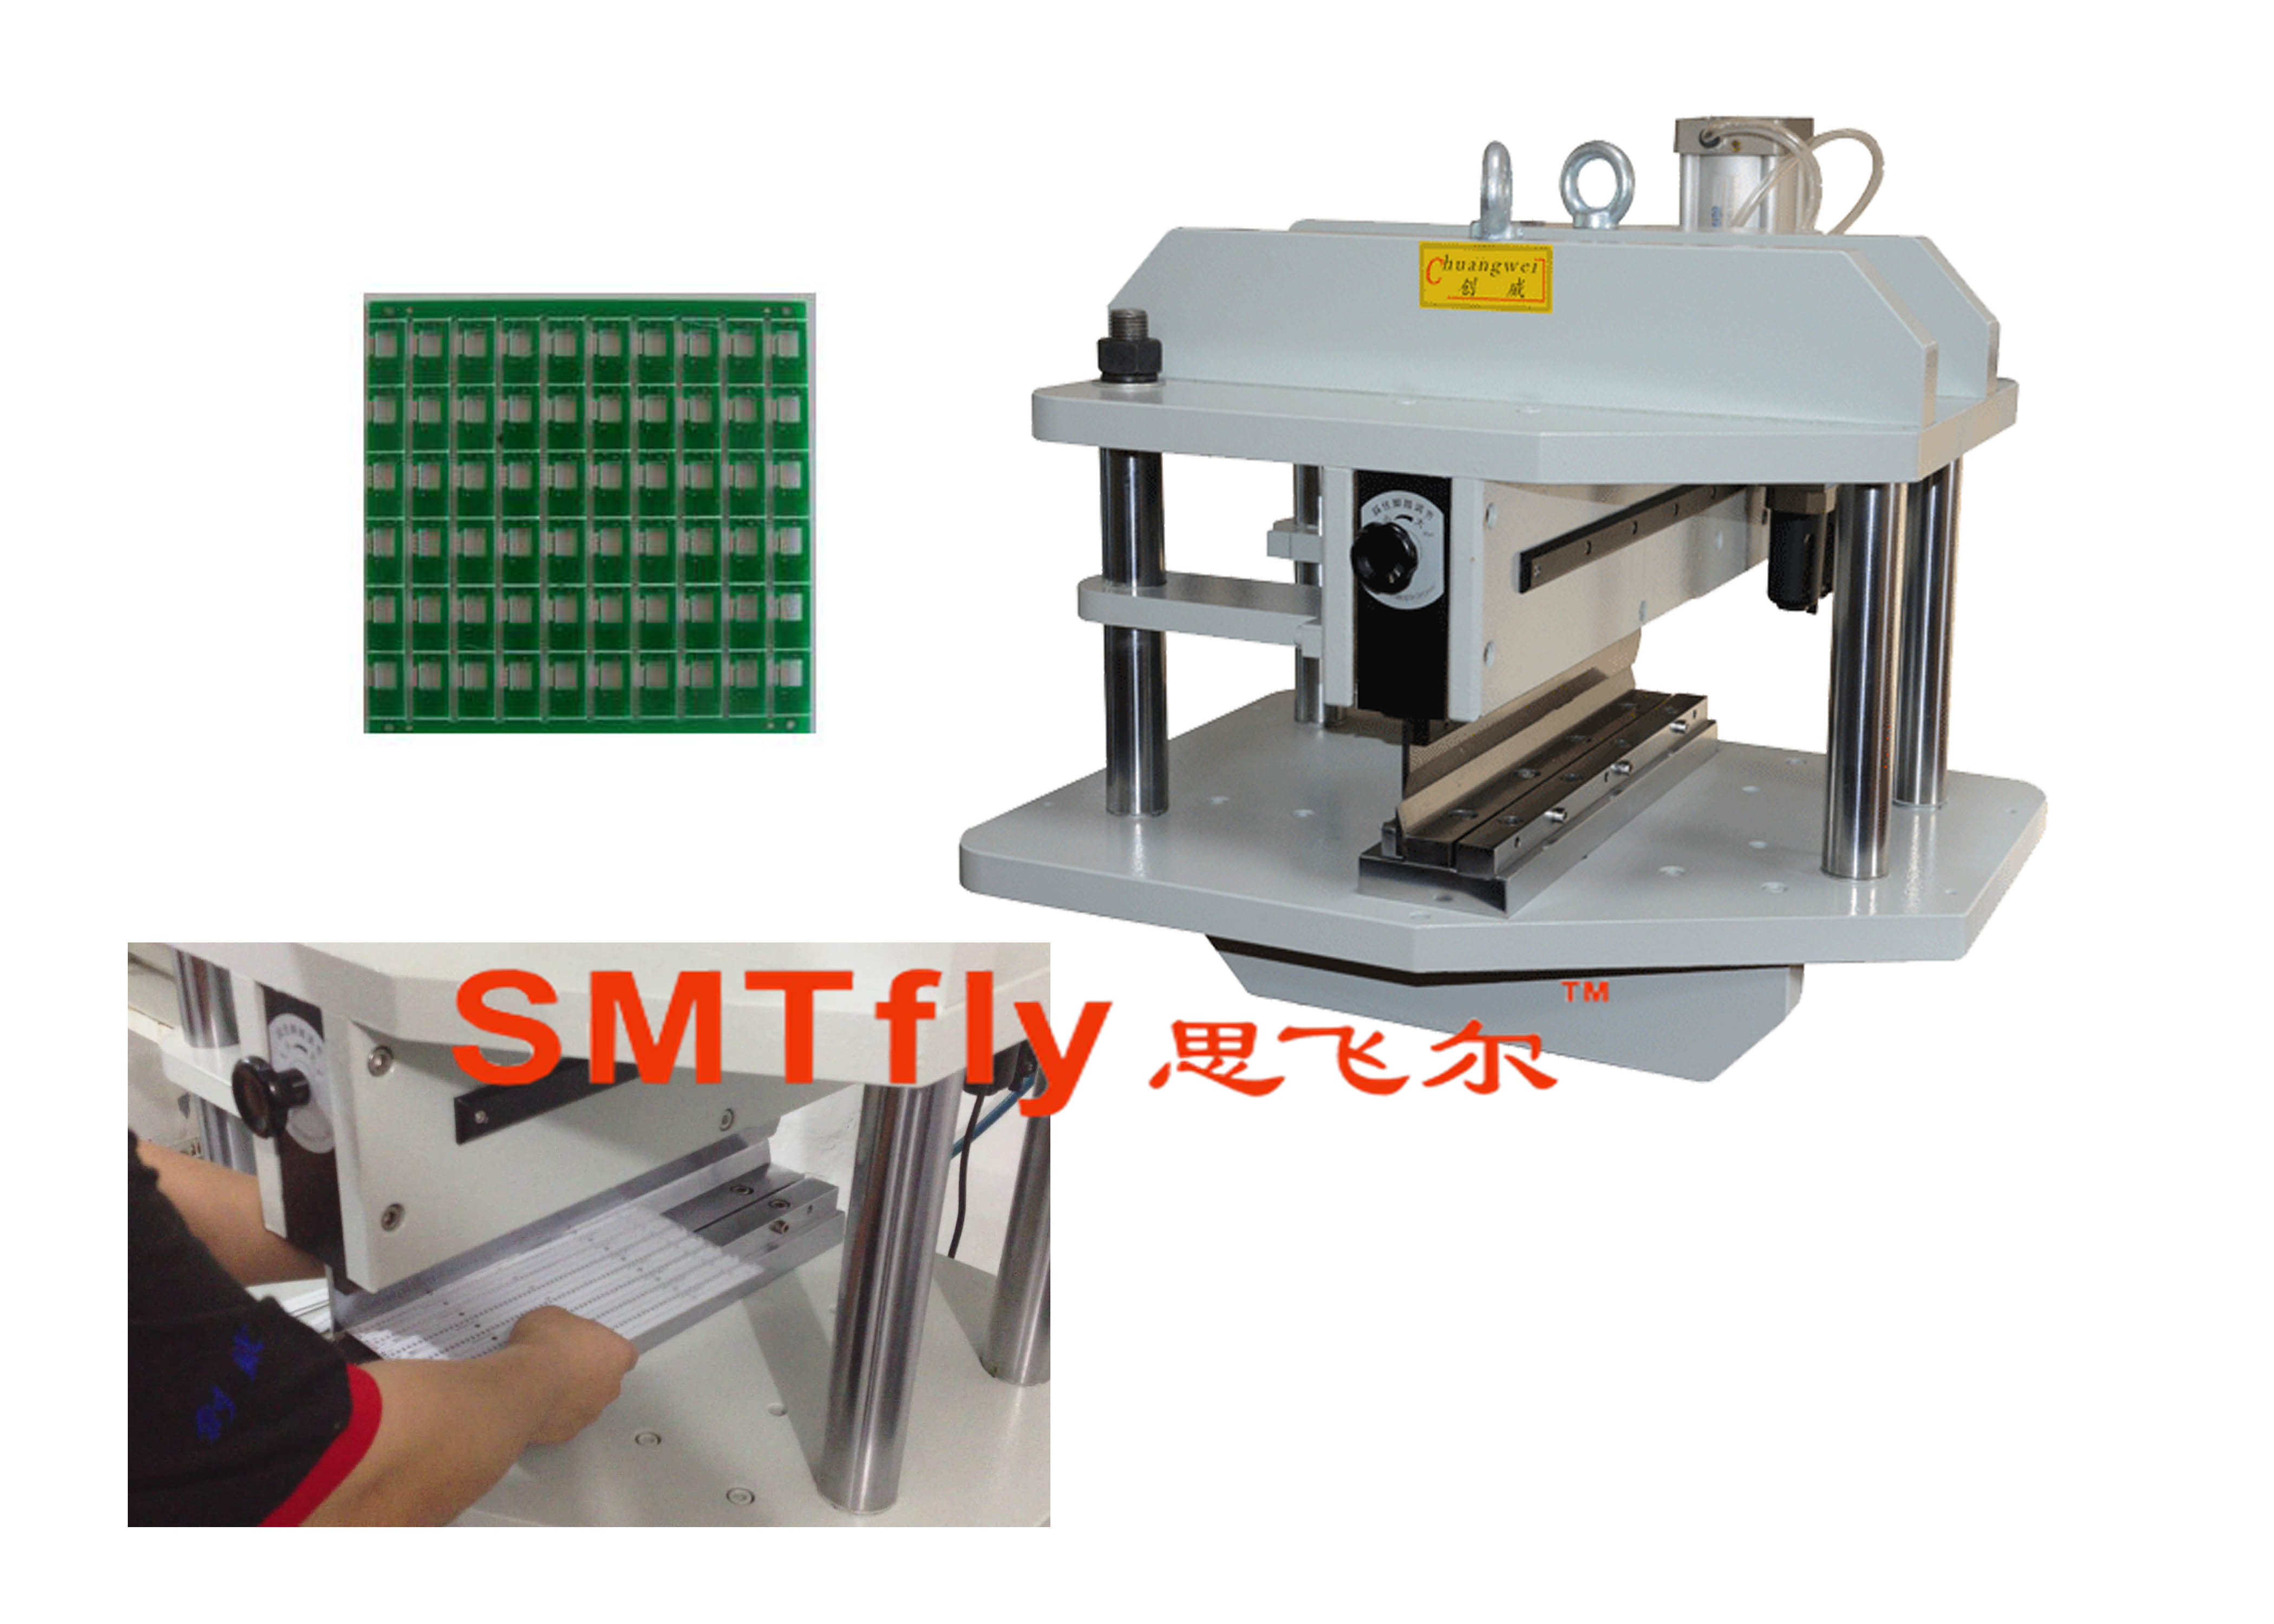 Flexible PCB Cutting Equipment,SMTfly-450C